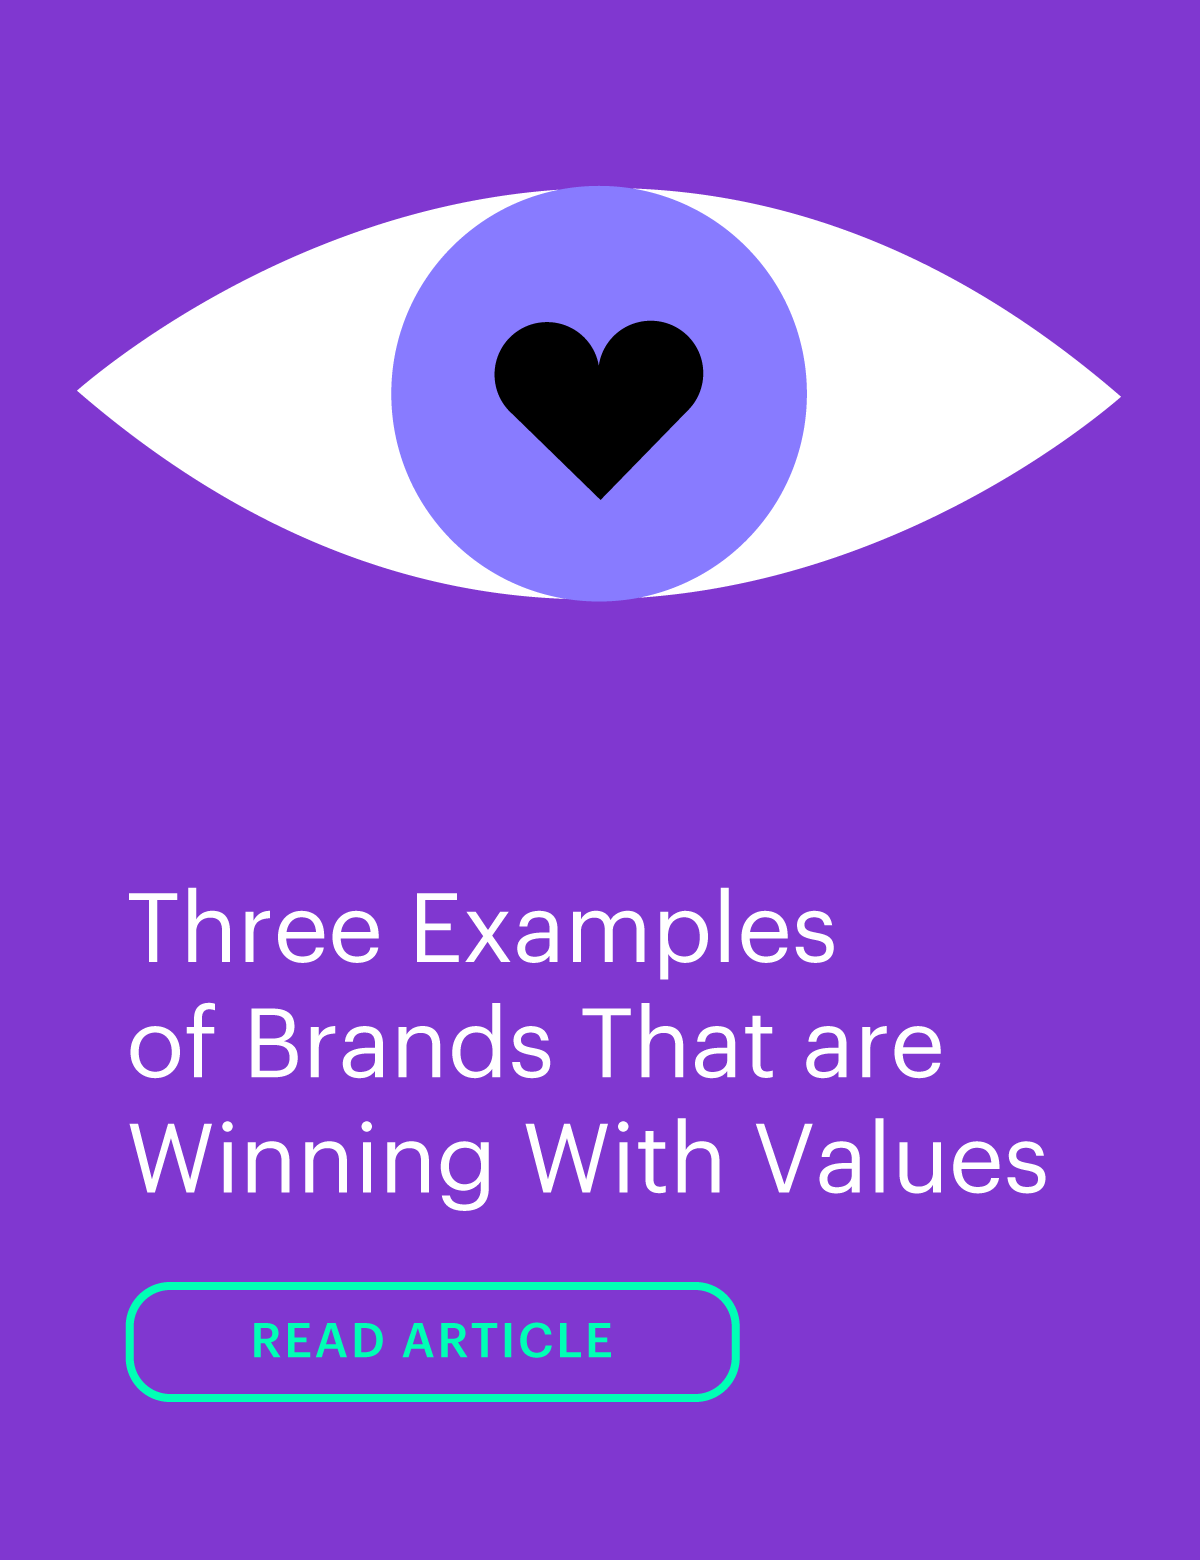 Three Examples of Brands That are Willing With Values